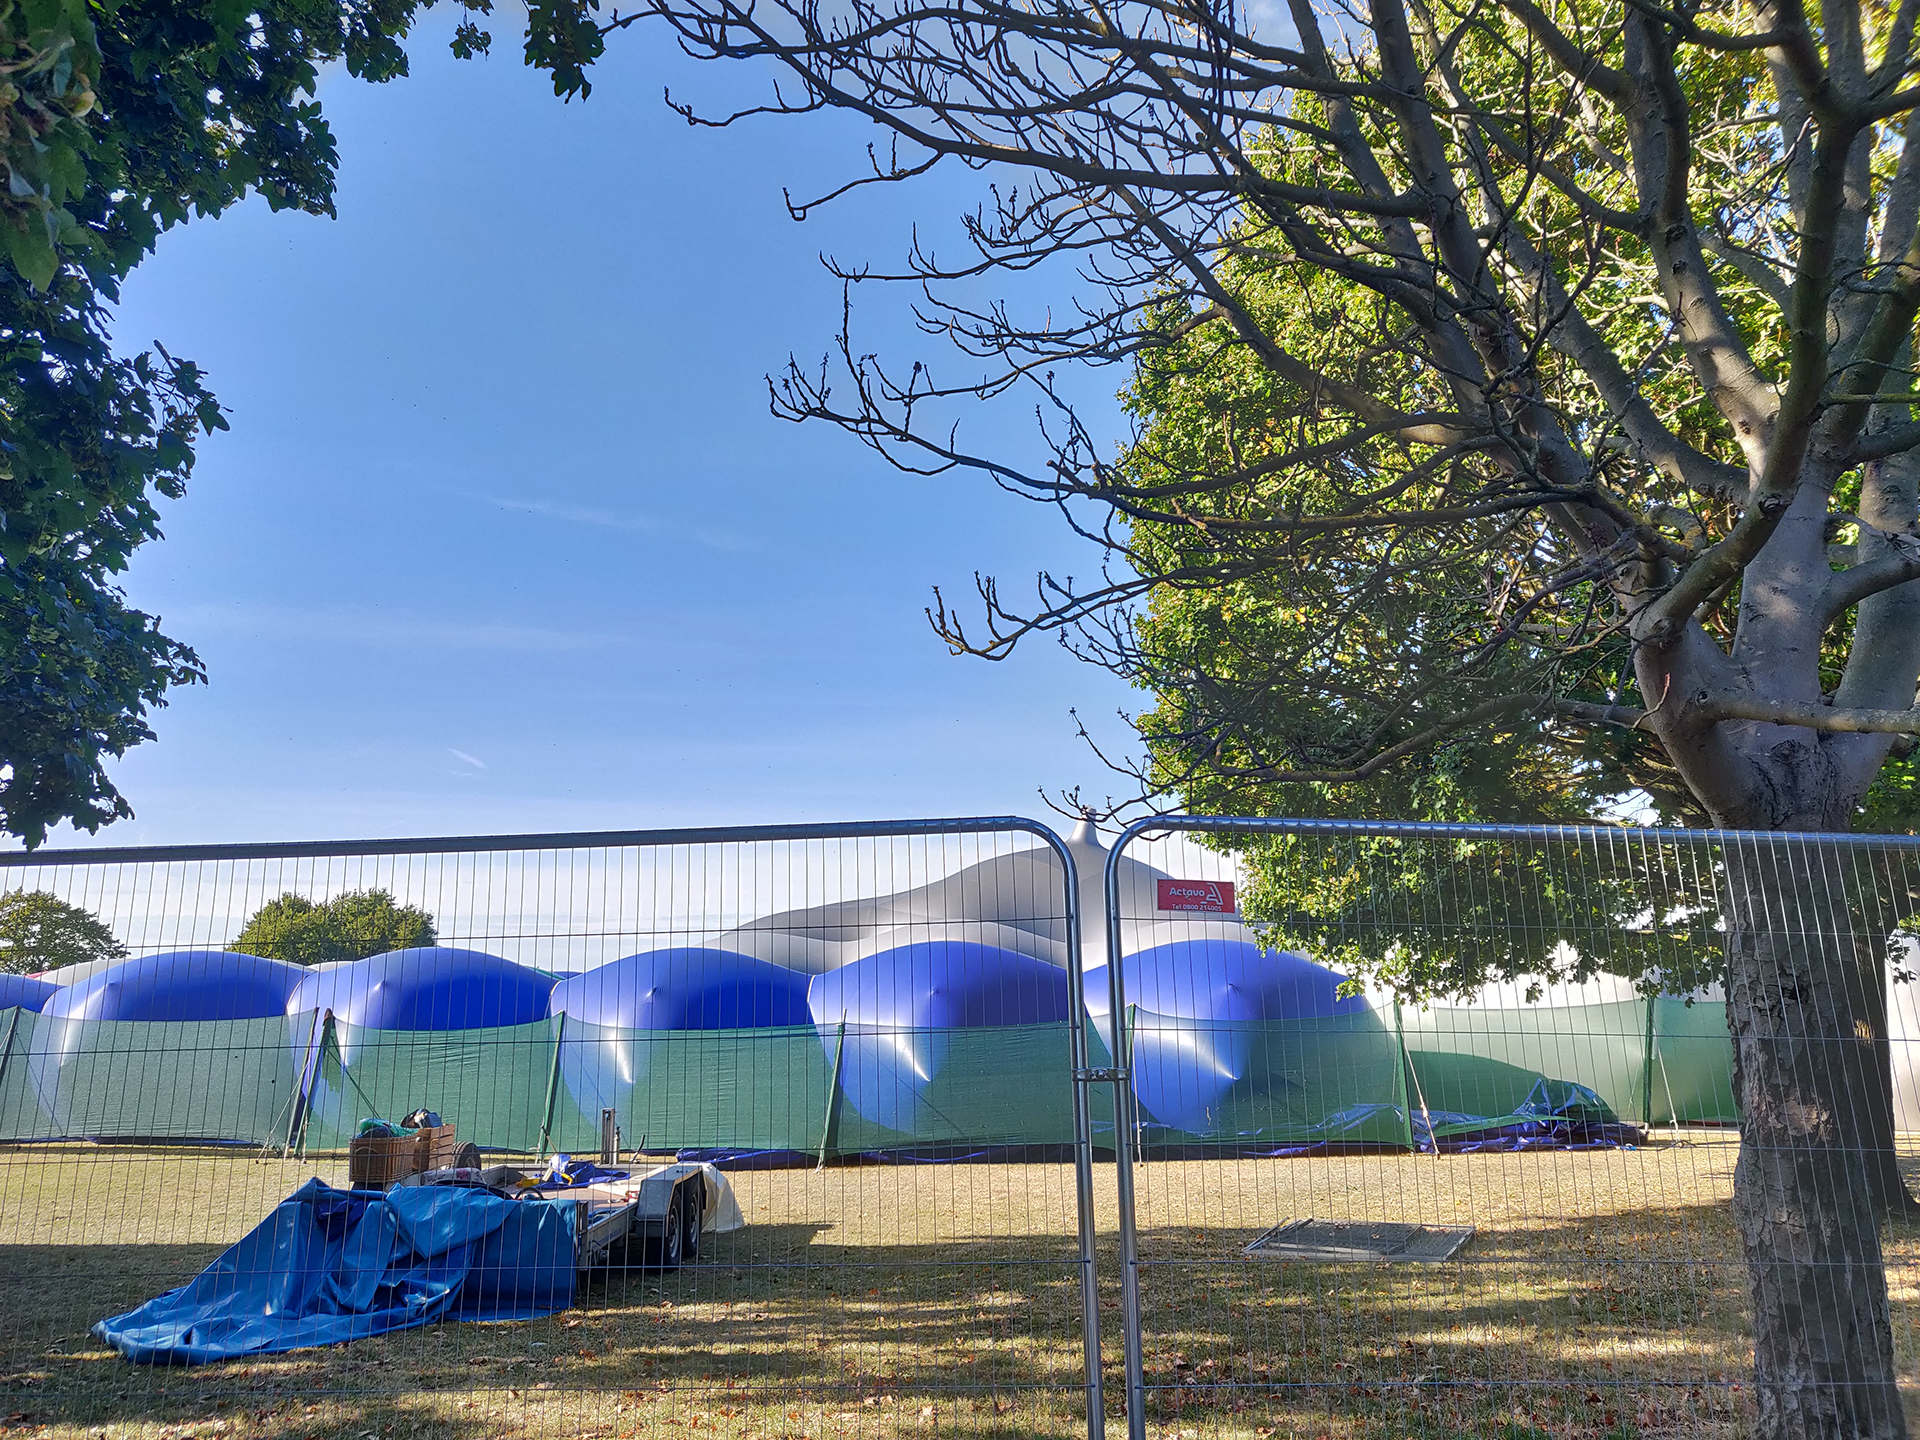 Colourscape Music Festival from the outside at Clapham Common | London Design Festival 2019 | STIR